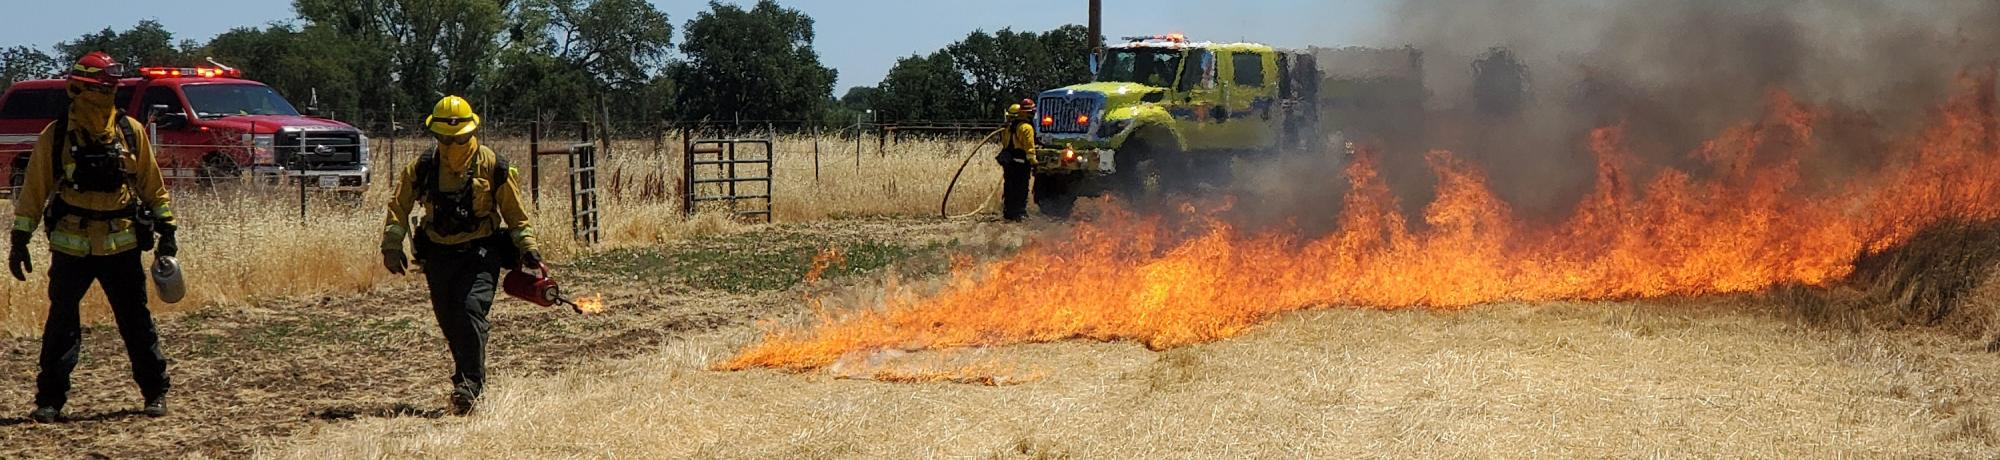 Firefighters participating in wildland fire training